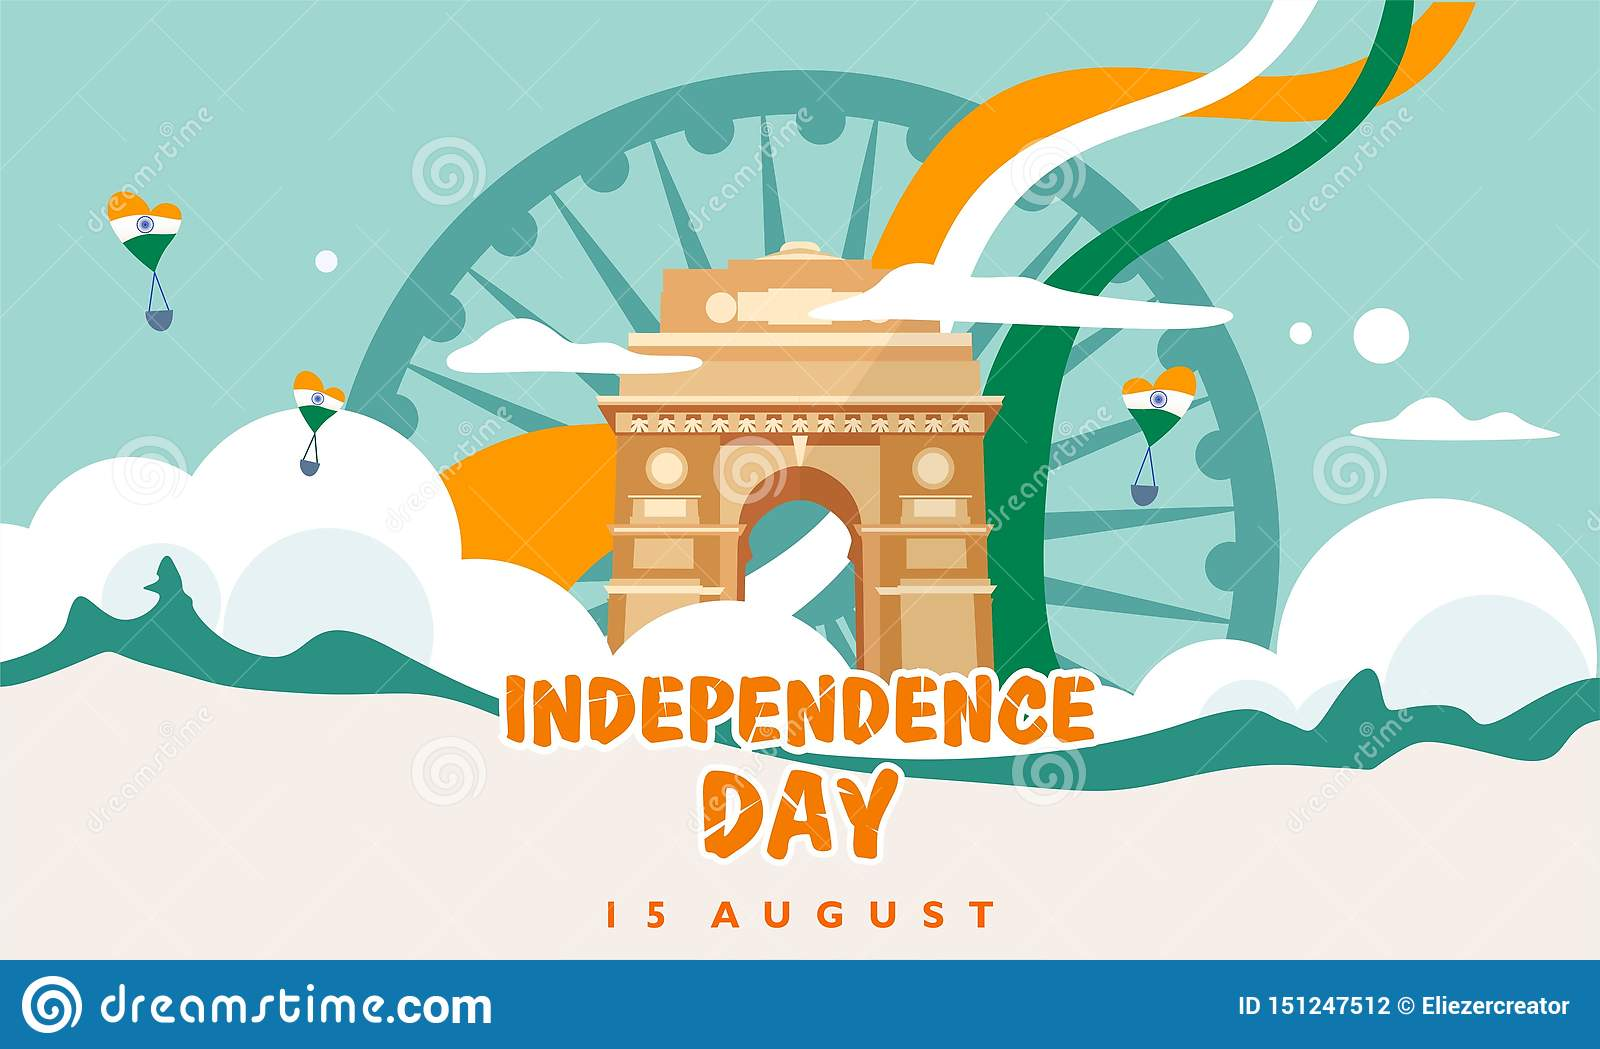 India Independence Day  15 August  India Gate  Heritage